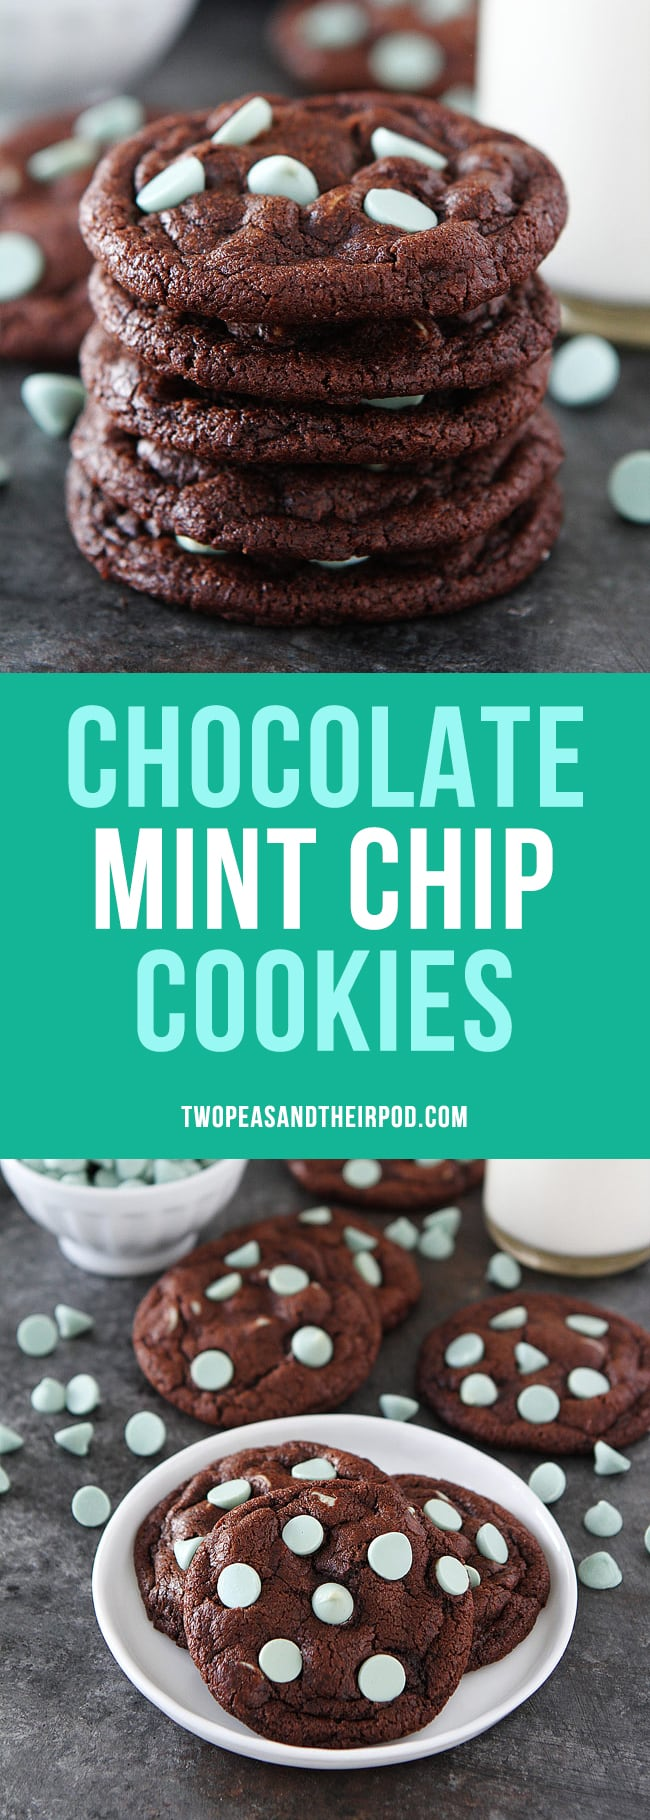 Chocolate Mint Chip Cookies are rich and fudgy chocolate cookies with green mint chocolate chips! Perfect for Christmas or any day! #cookies #Christmas #Christmascookies #mint #chocolatemint